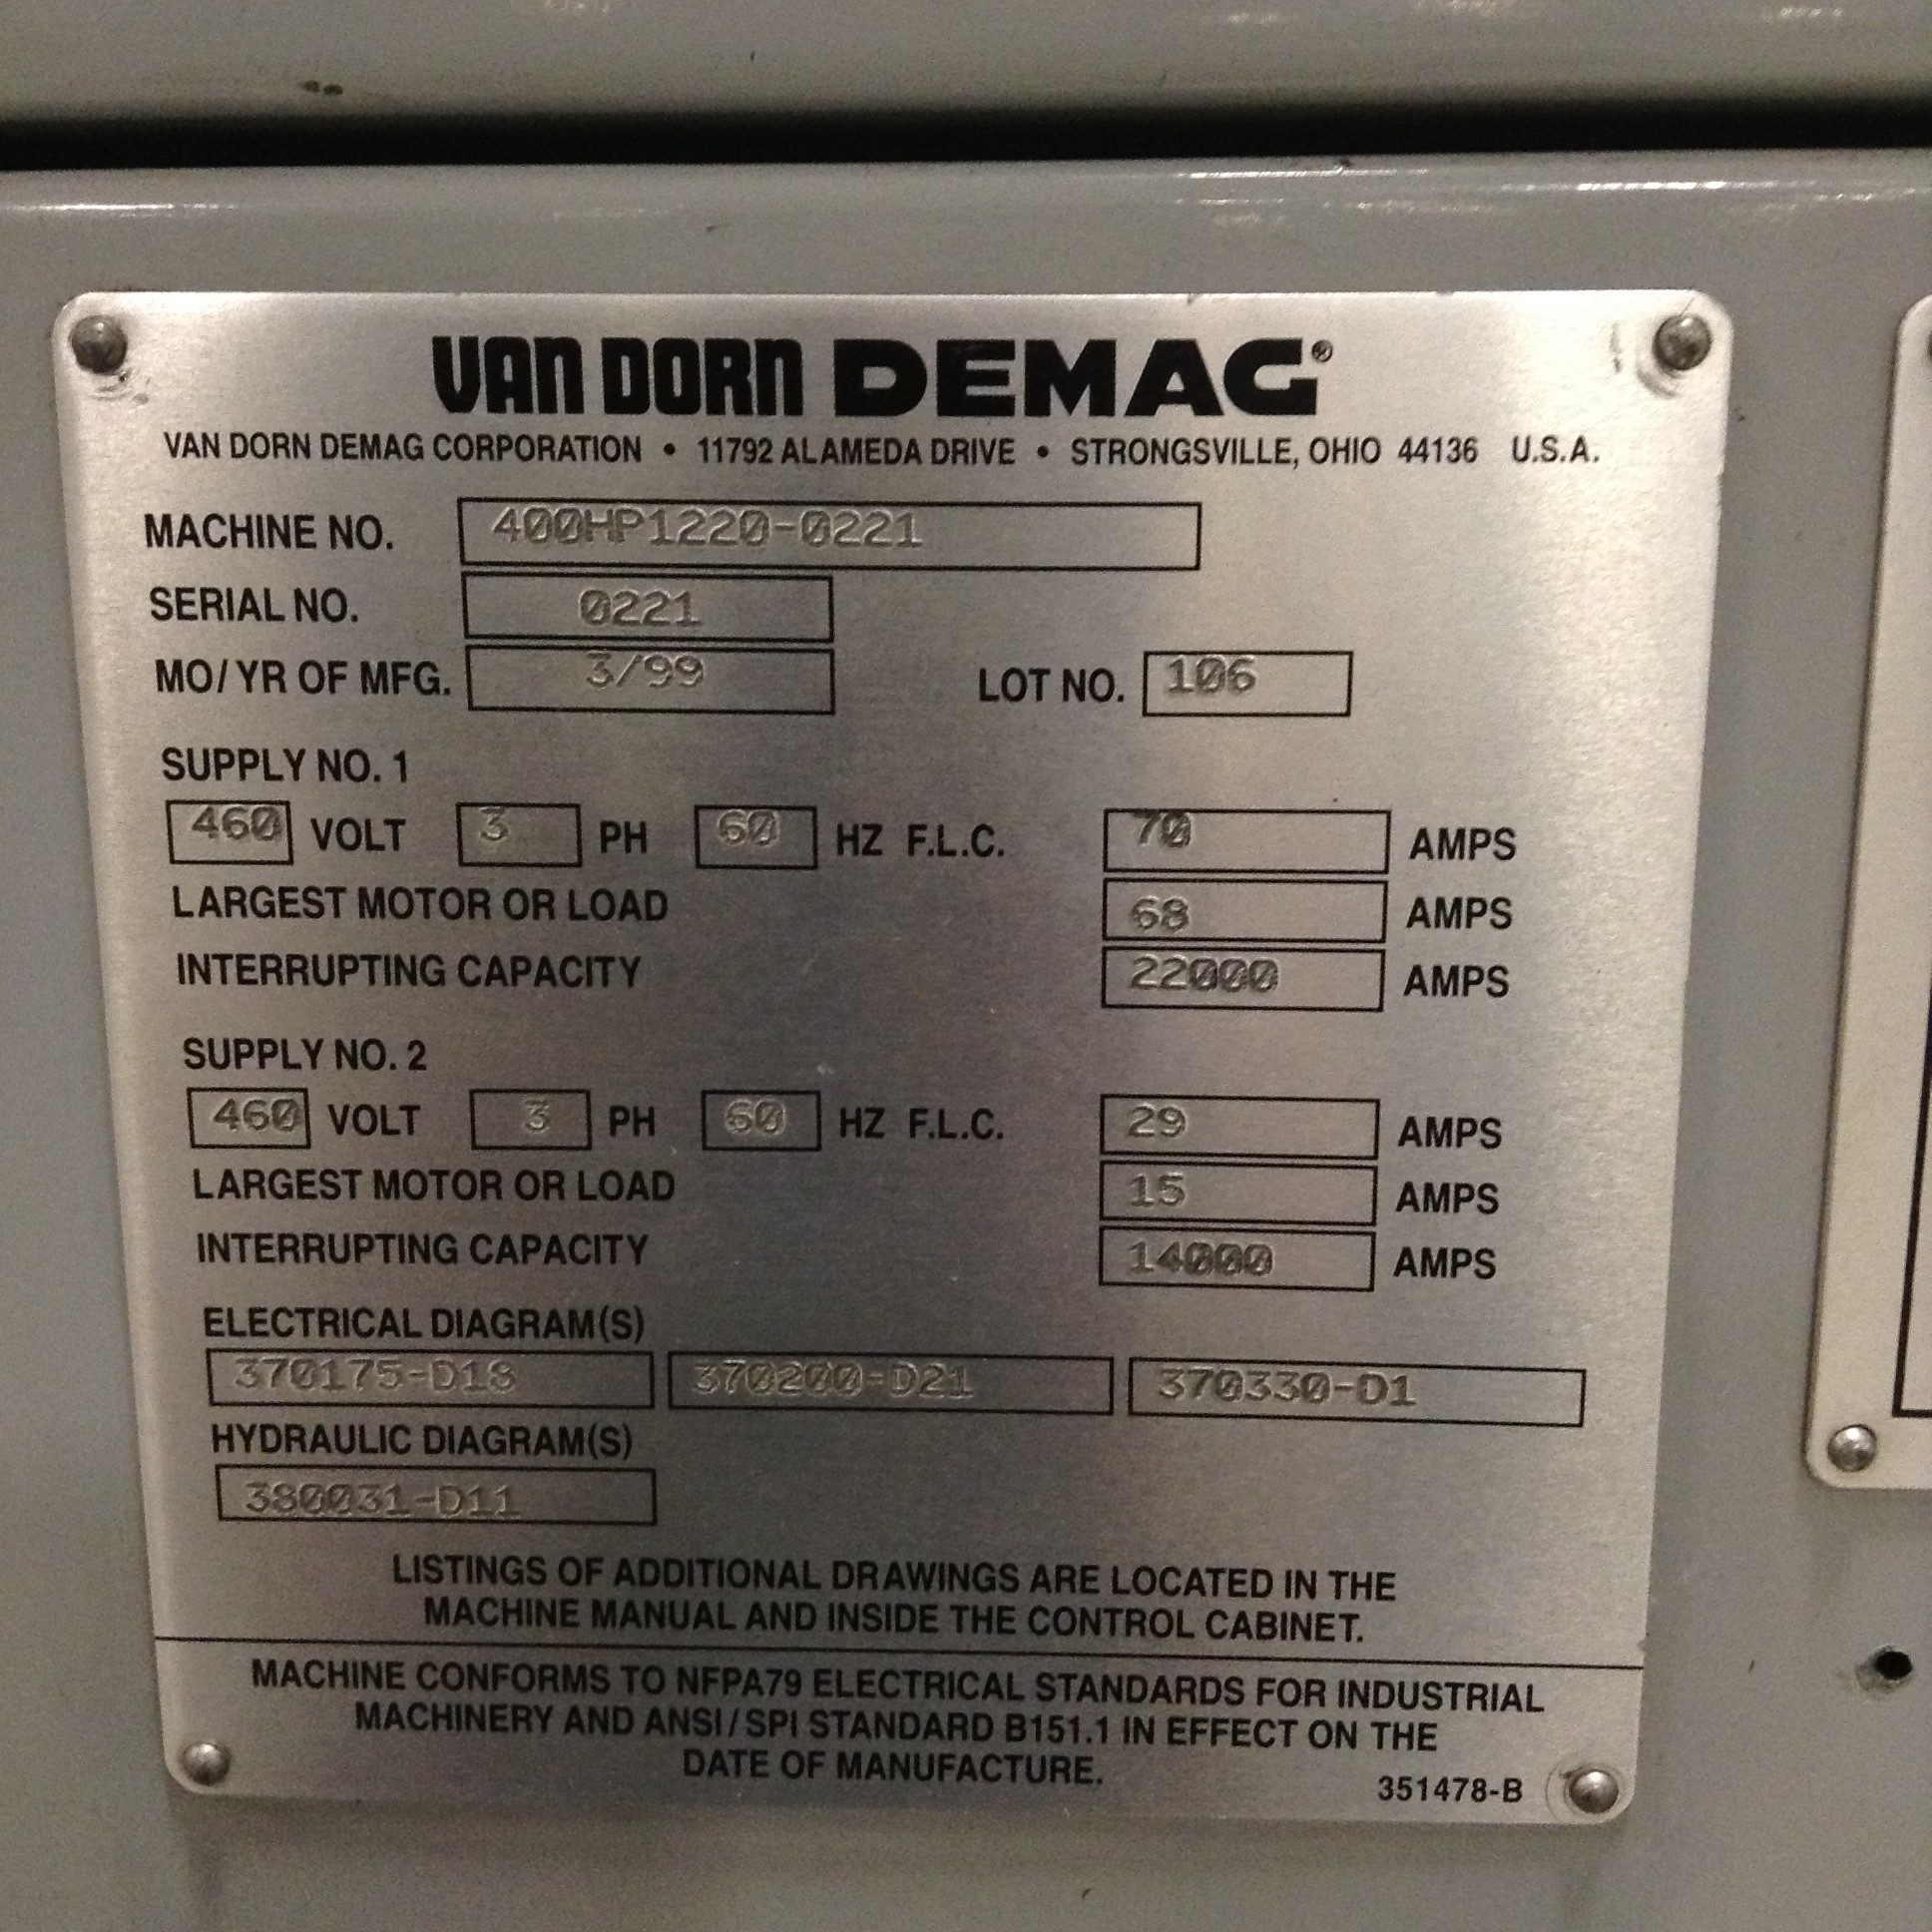 hight resolution of van dorn demag 400 ton injection molding machine 400hp1220 used van dorn bottle van dorn wiring diagram